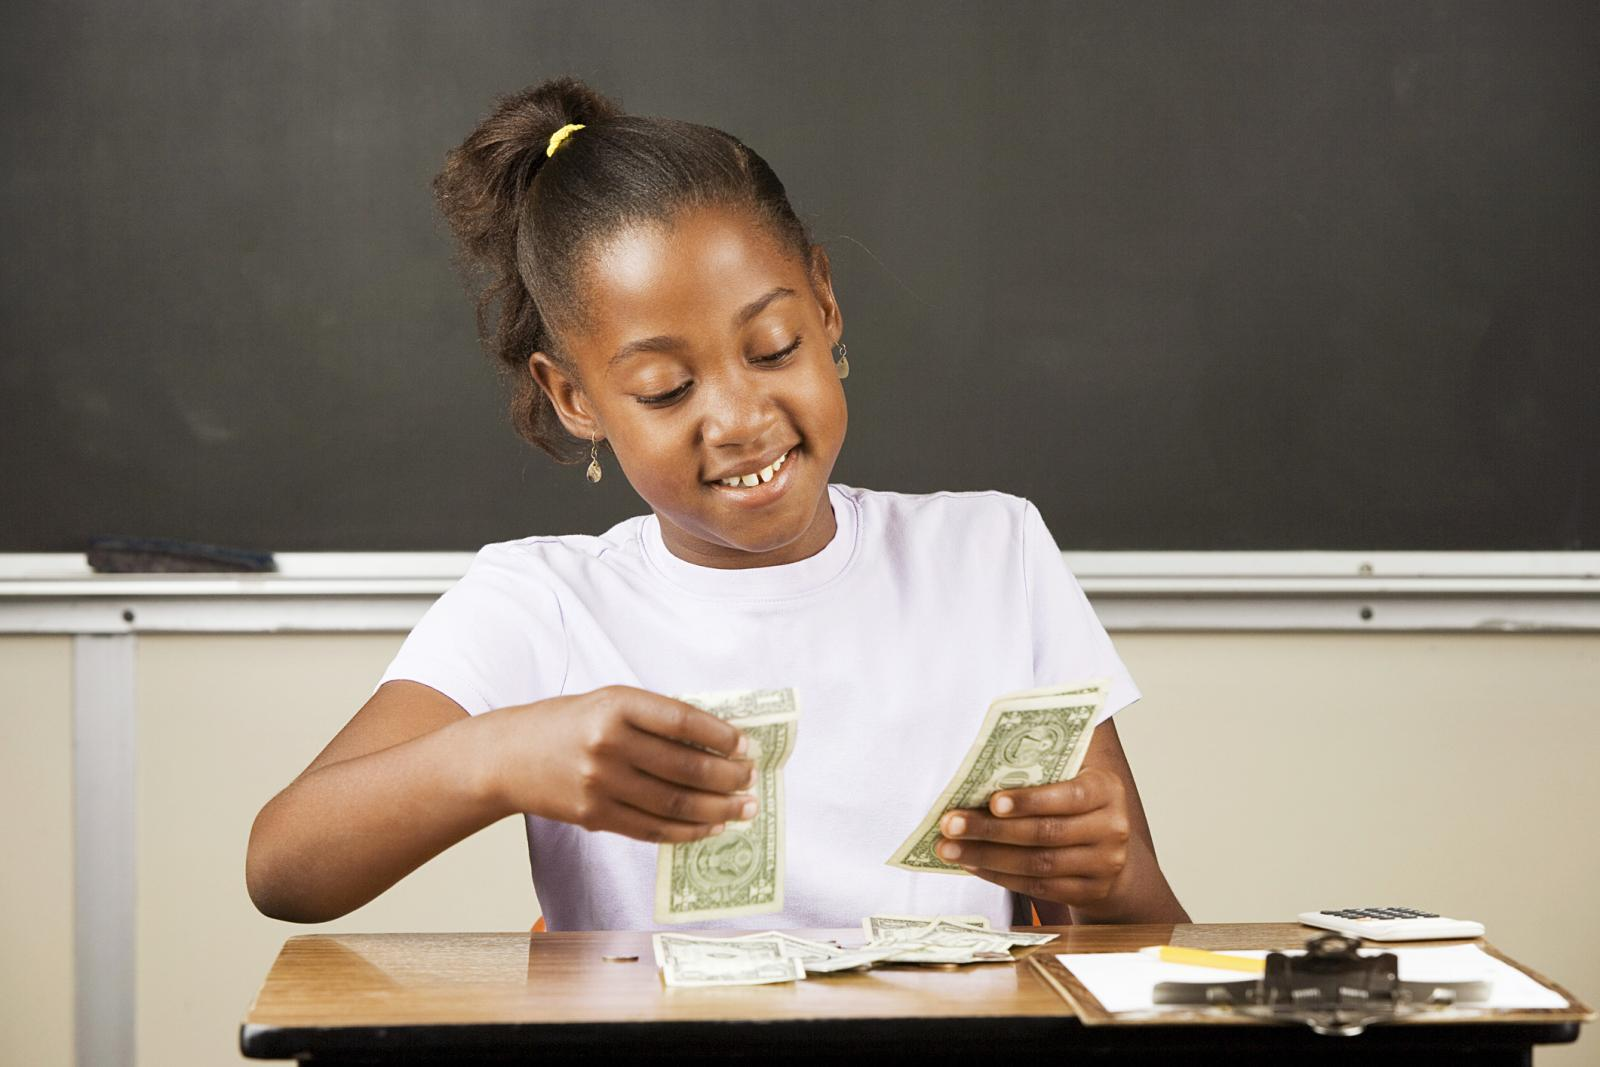 Student counting money on a desk